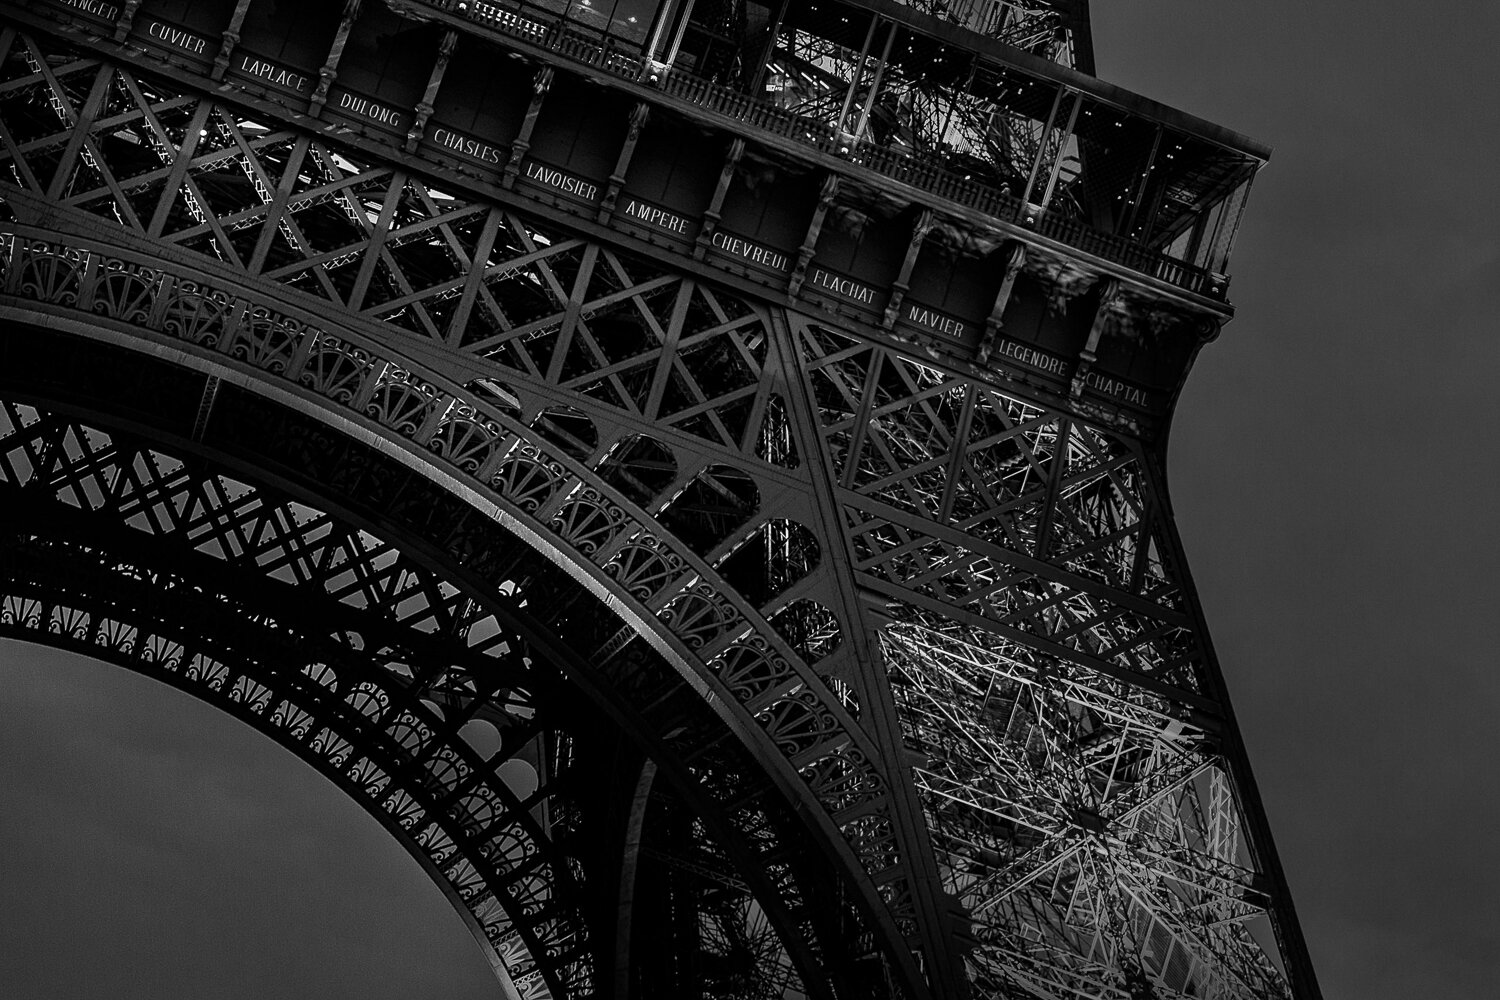 Eiffel Tower close up in black & white